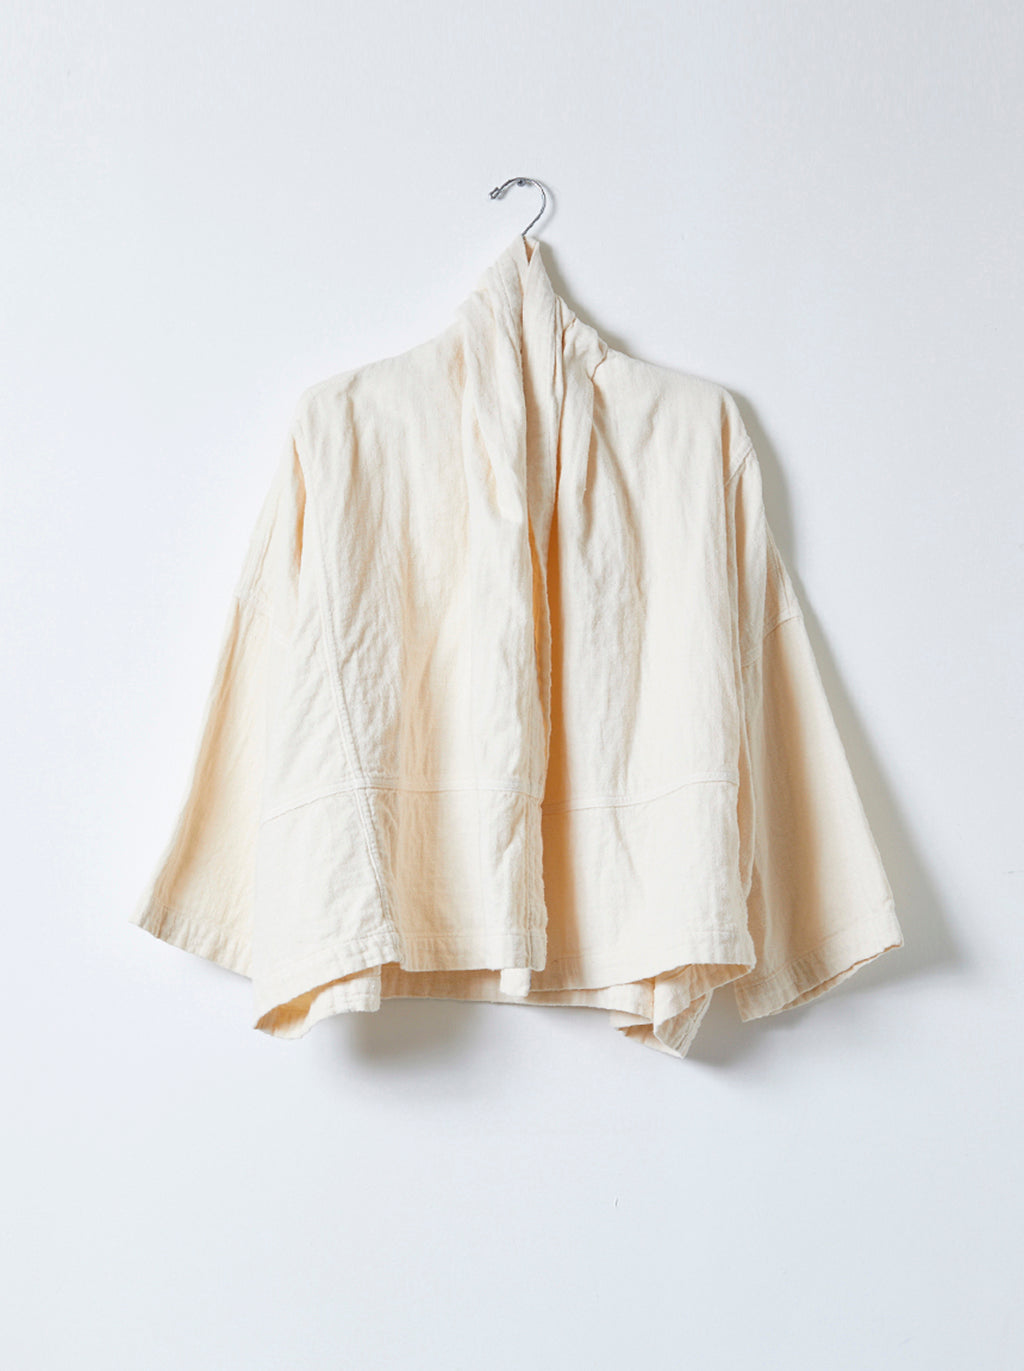 Kimono Jacket in Cotton Gauze, More Colors